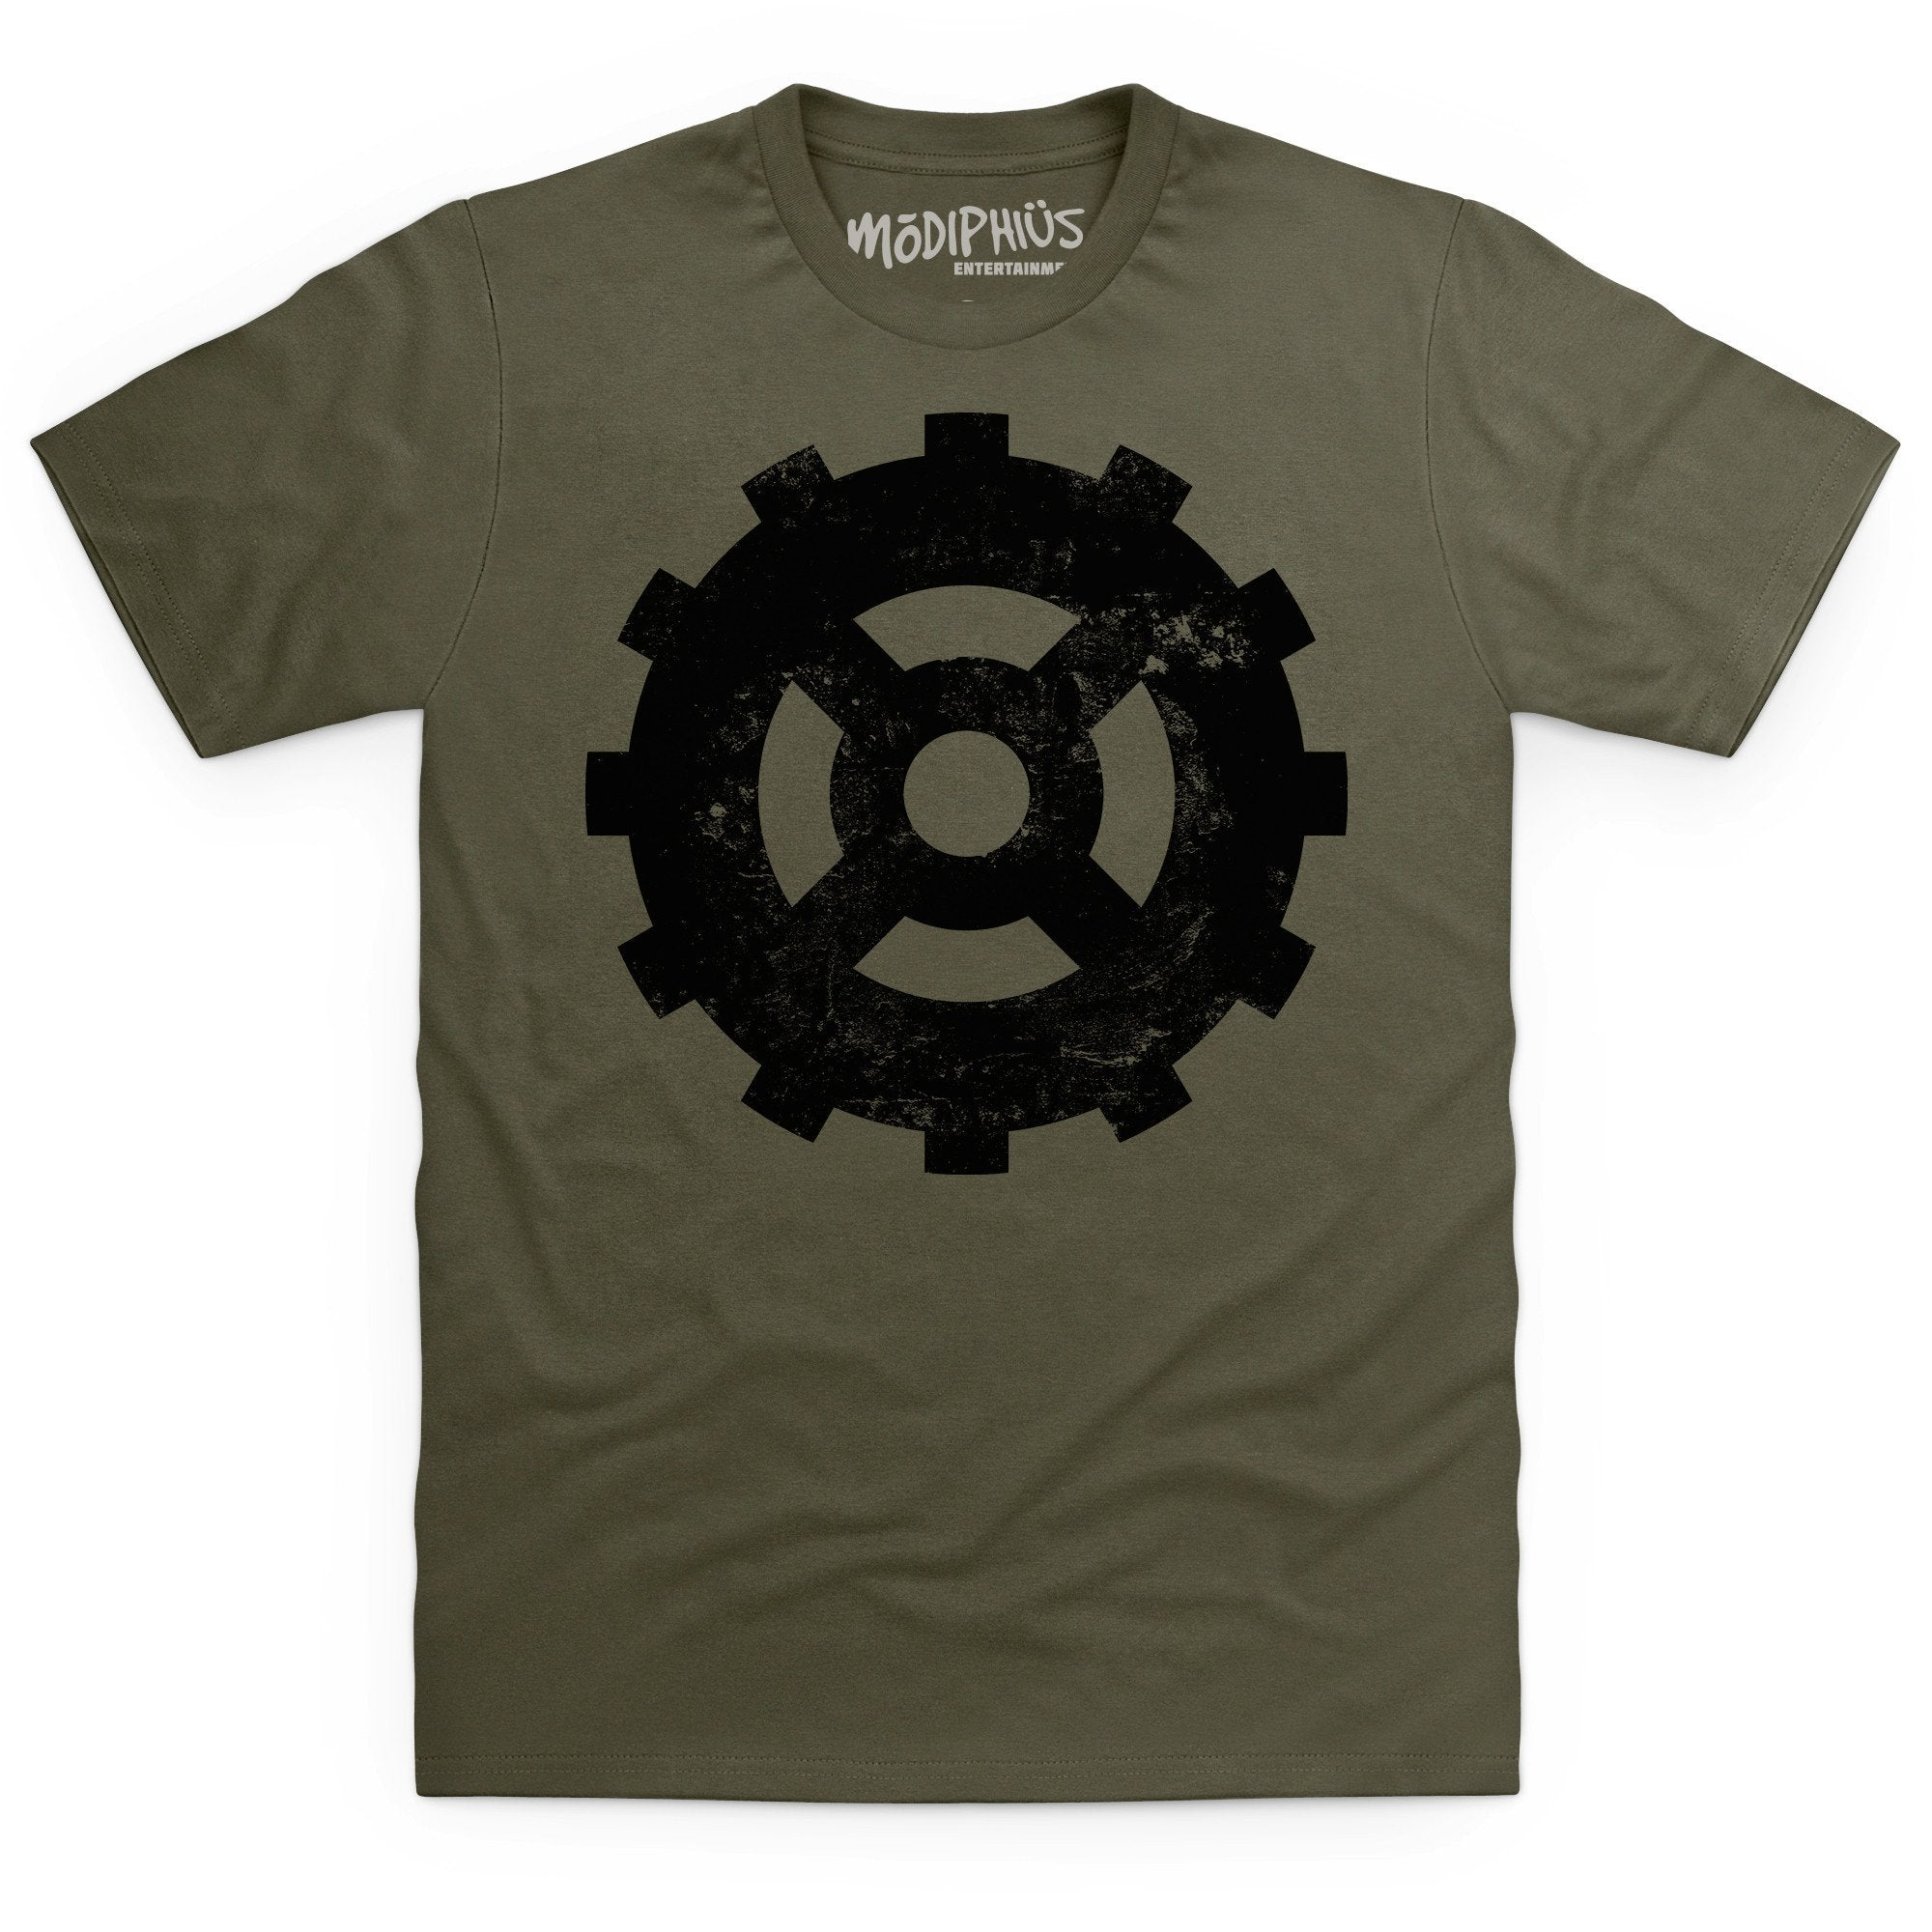 Mutant Chronicles: Bauhaus distressed t-shirt